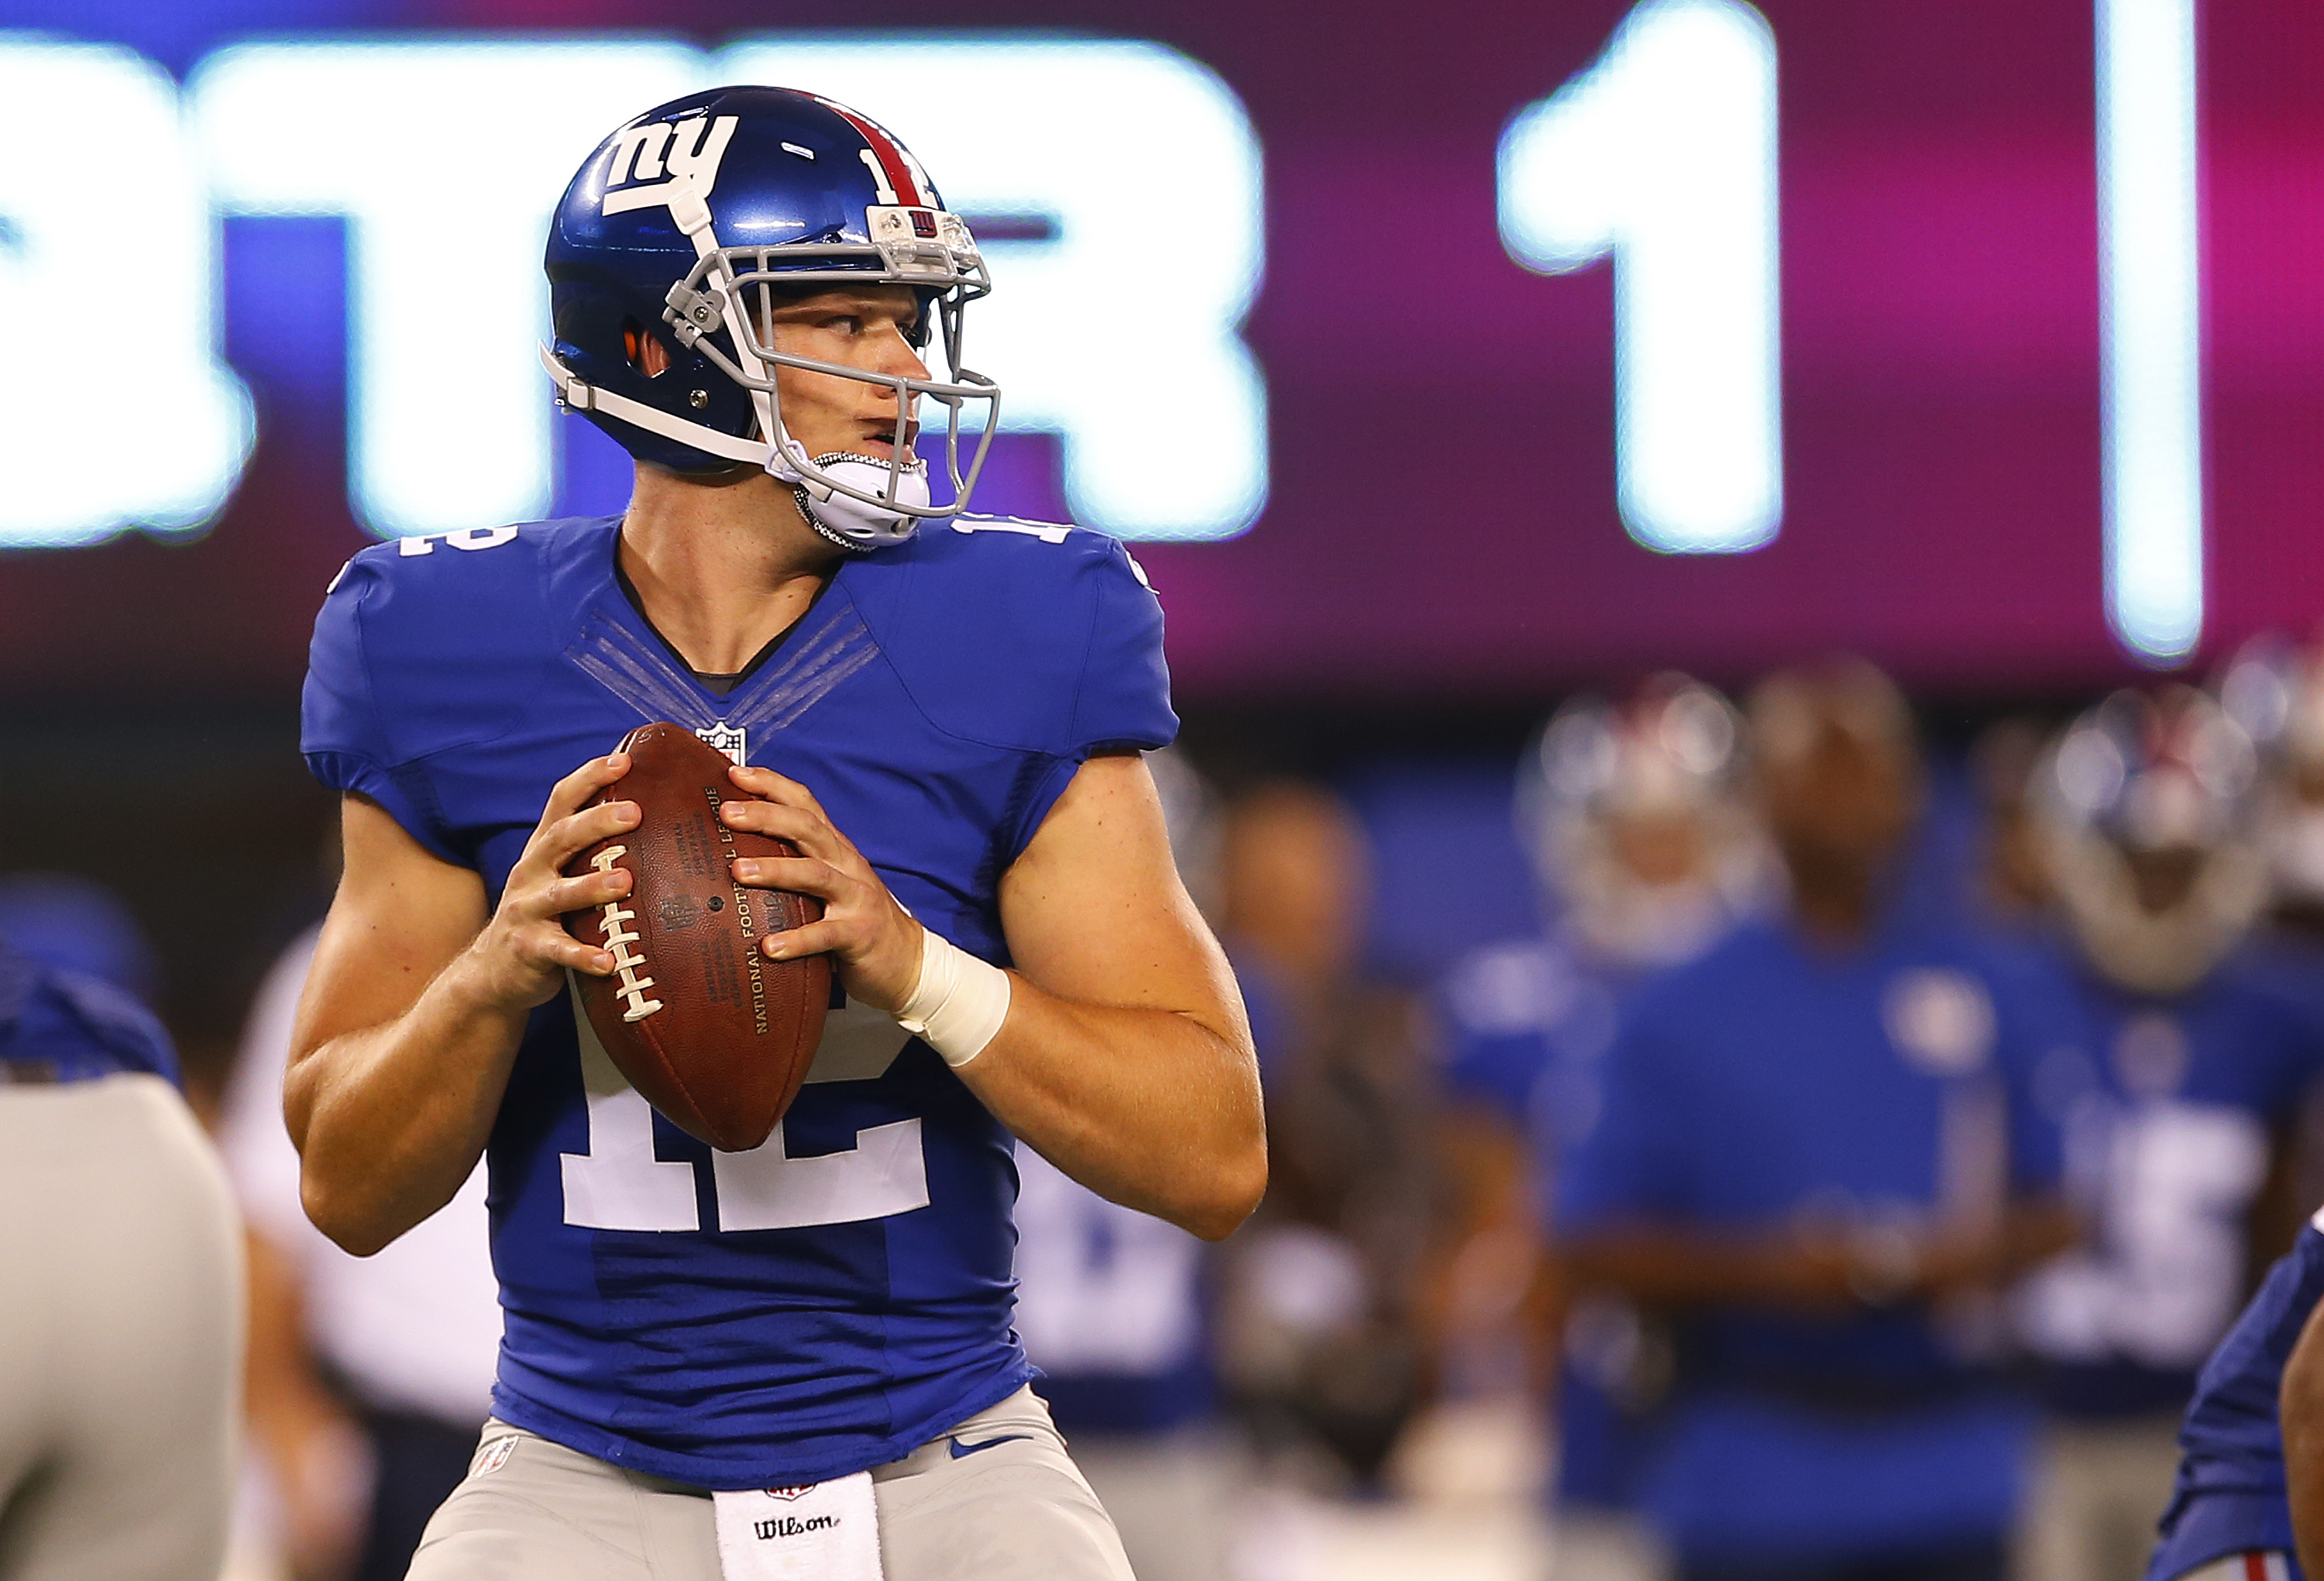 Jaguars sign QB Ryan Nassib, place S Calvin Pryor on injured reserve